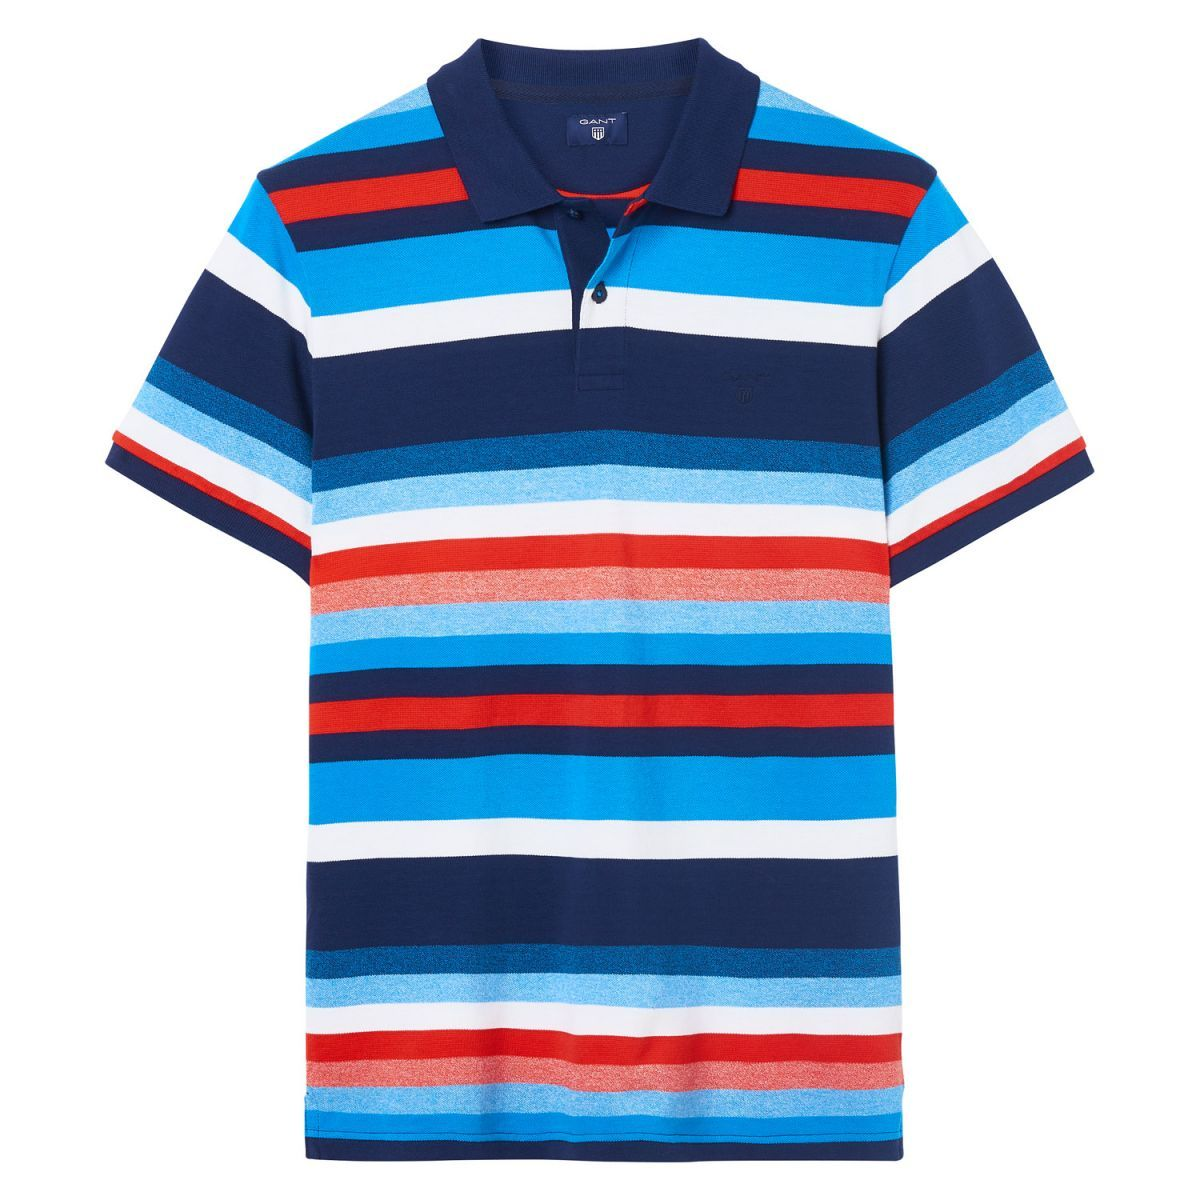 ba80192c2e5 Our Multistripe Polo Shirt, in 100% cotton, has a waffle and jersey mix  structure, and features an allover yarn-dyed stripe design featuring all of  our ...